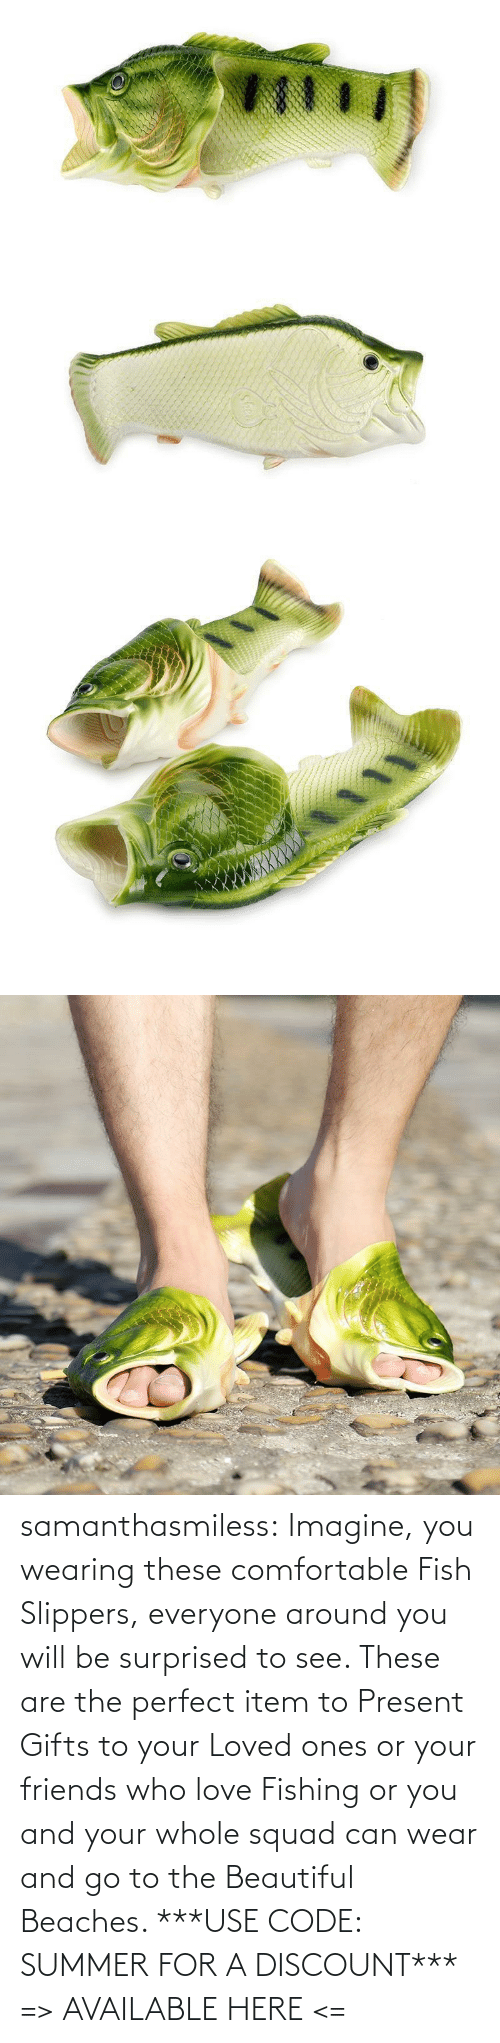 Here: samanthasmiless: Imagine, you wearing these comfortable Fish Slippers, everyone around you will be surprised to see. These are the perfect item to Present Gifts to your Loved ones or your friends who love Fishing or you and your whole squad can wear and go to the Beautiful Beaches.  ***USE CODE: SUMMER FOR A DISCOUNT*** => AVAILABLE HERE <=